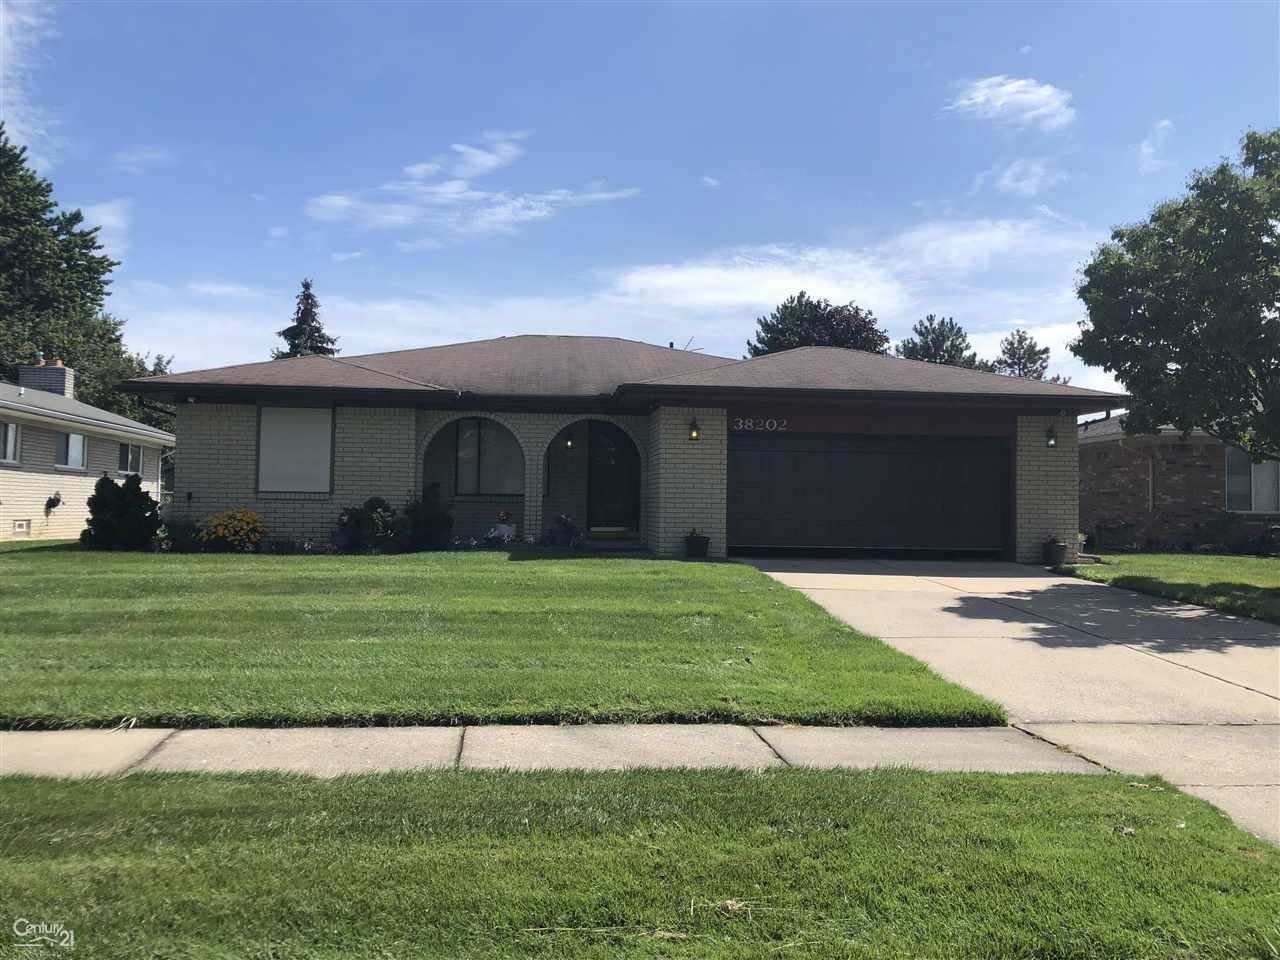 38202 Sleigh Dr, Sterling Heights, MI 48310 - #: 50057777